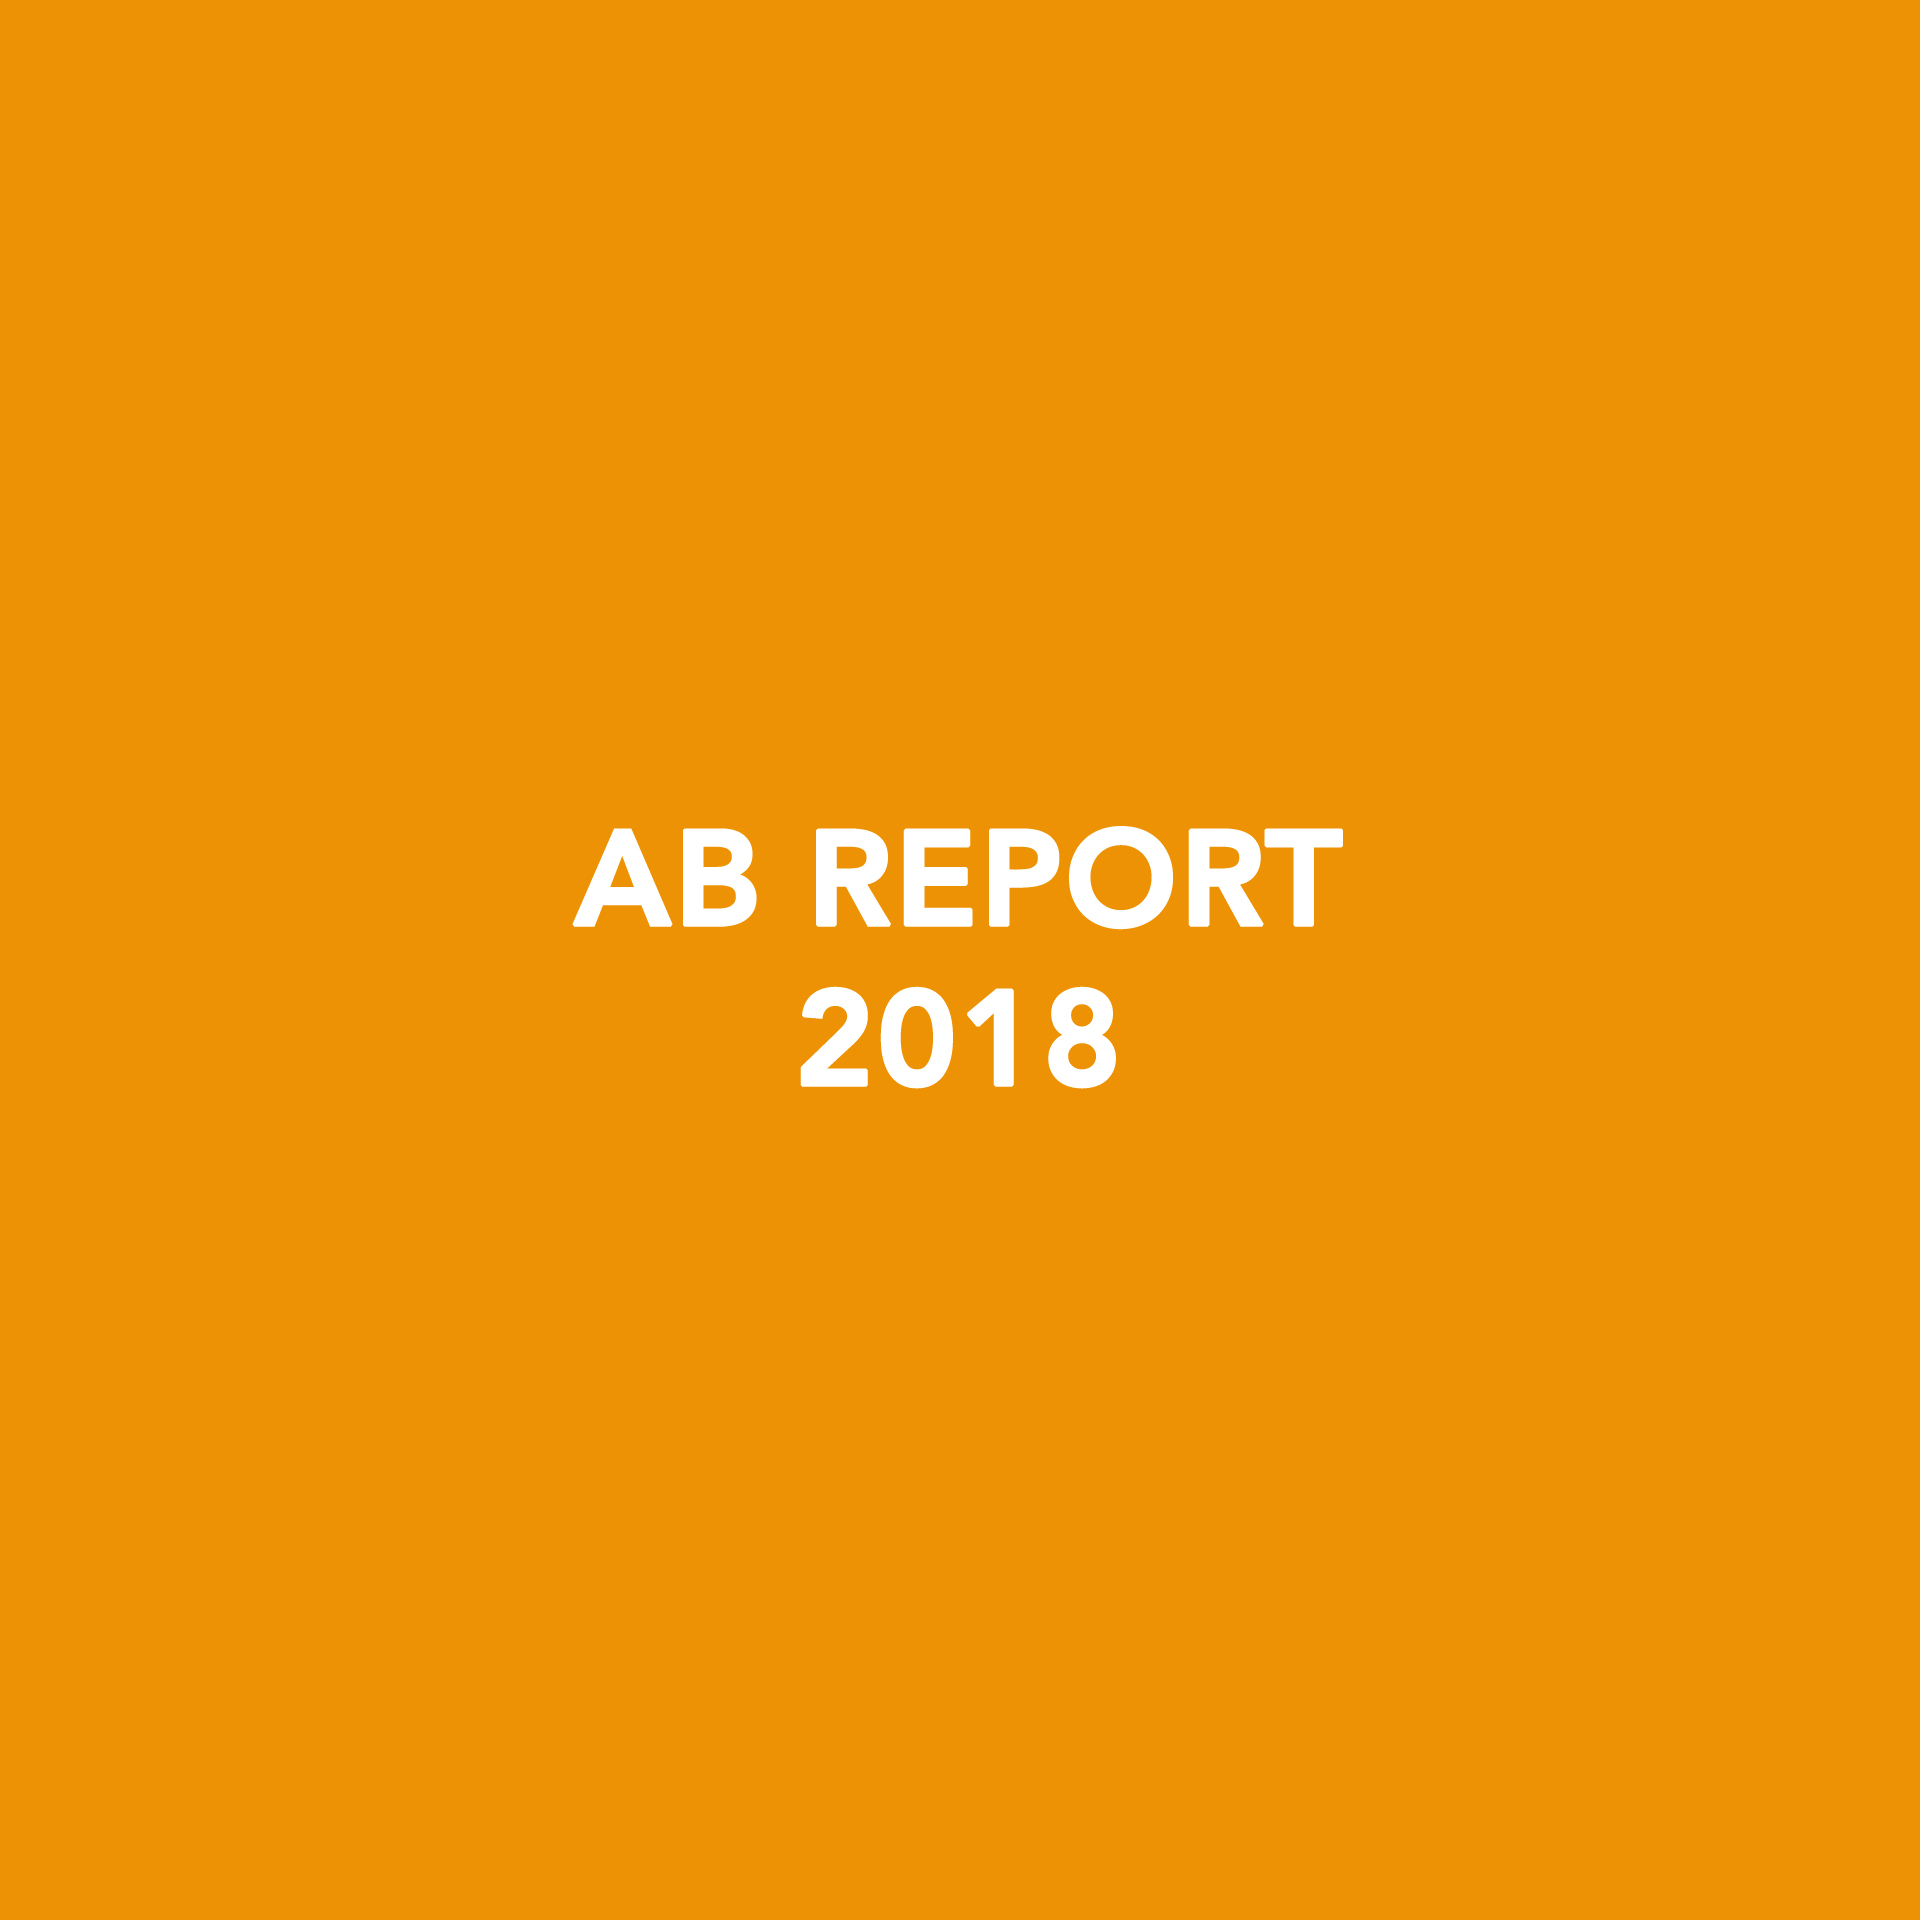 abreport